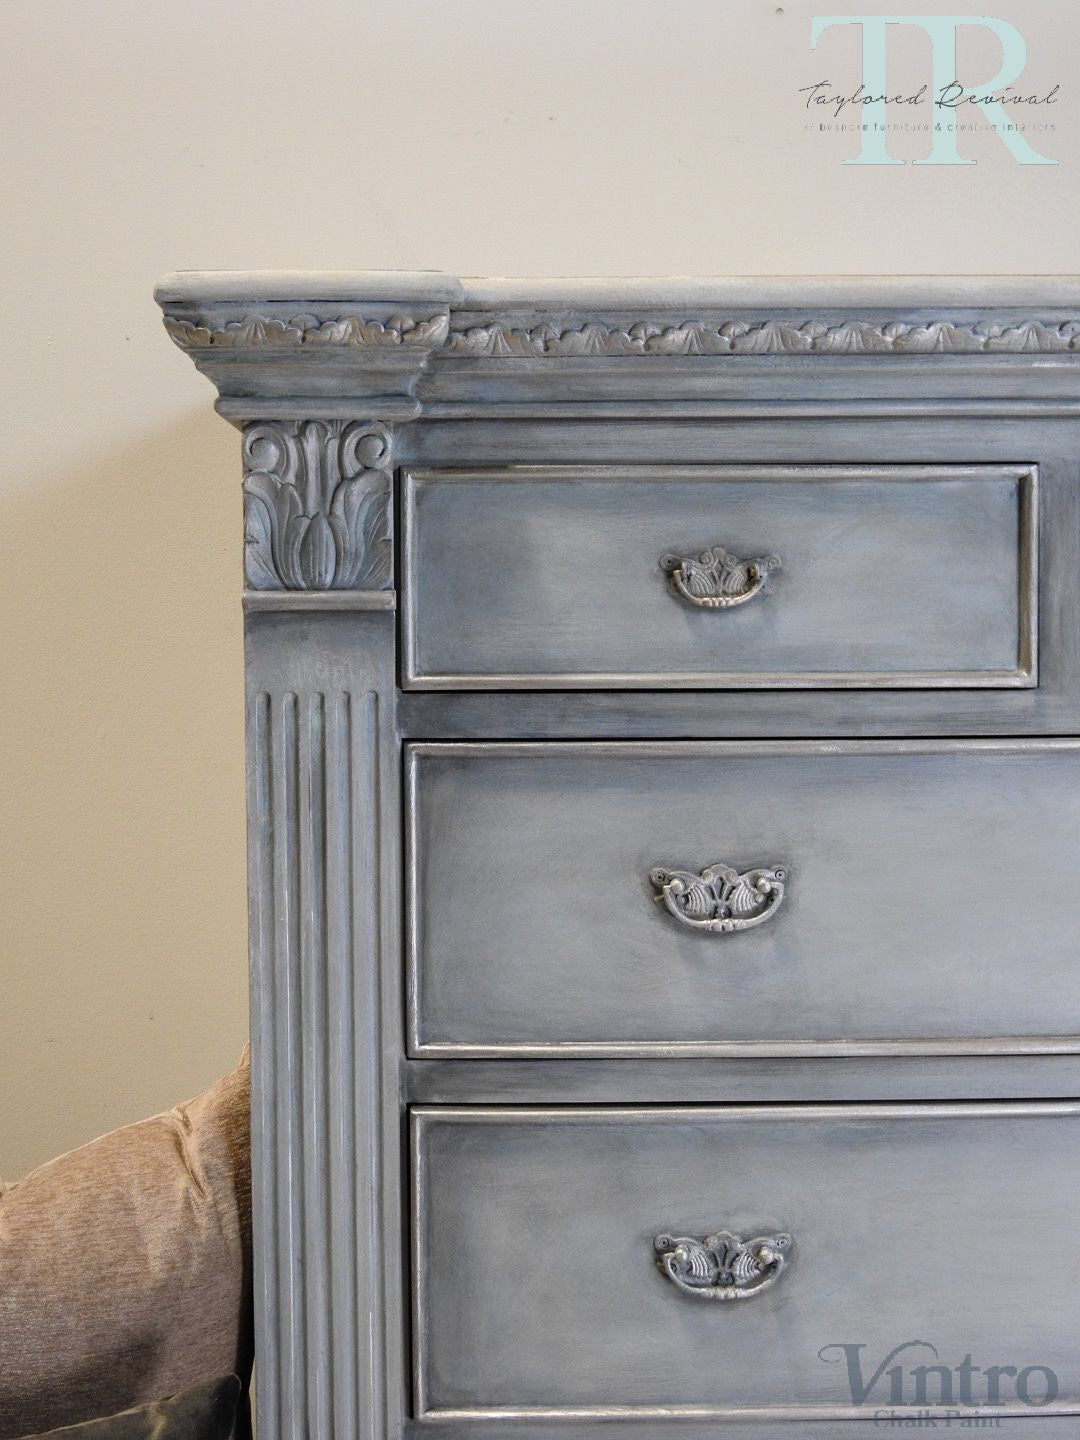 Veronica - 7 Drawer Pillar chest in Dove with layered Blues and Silver detailing